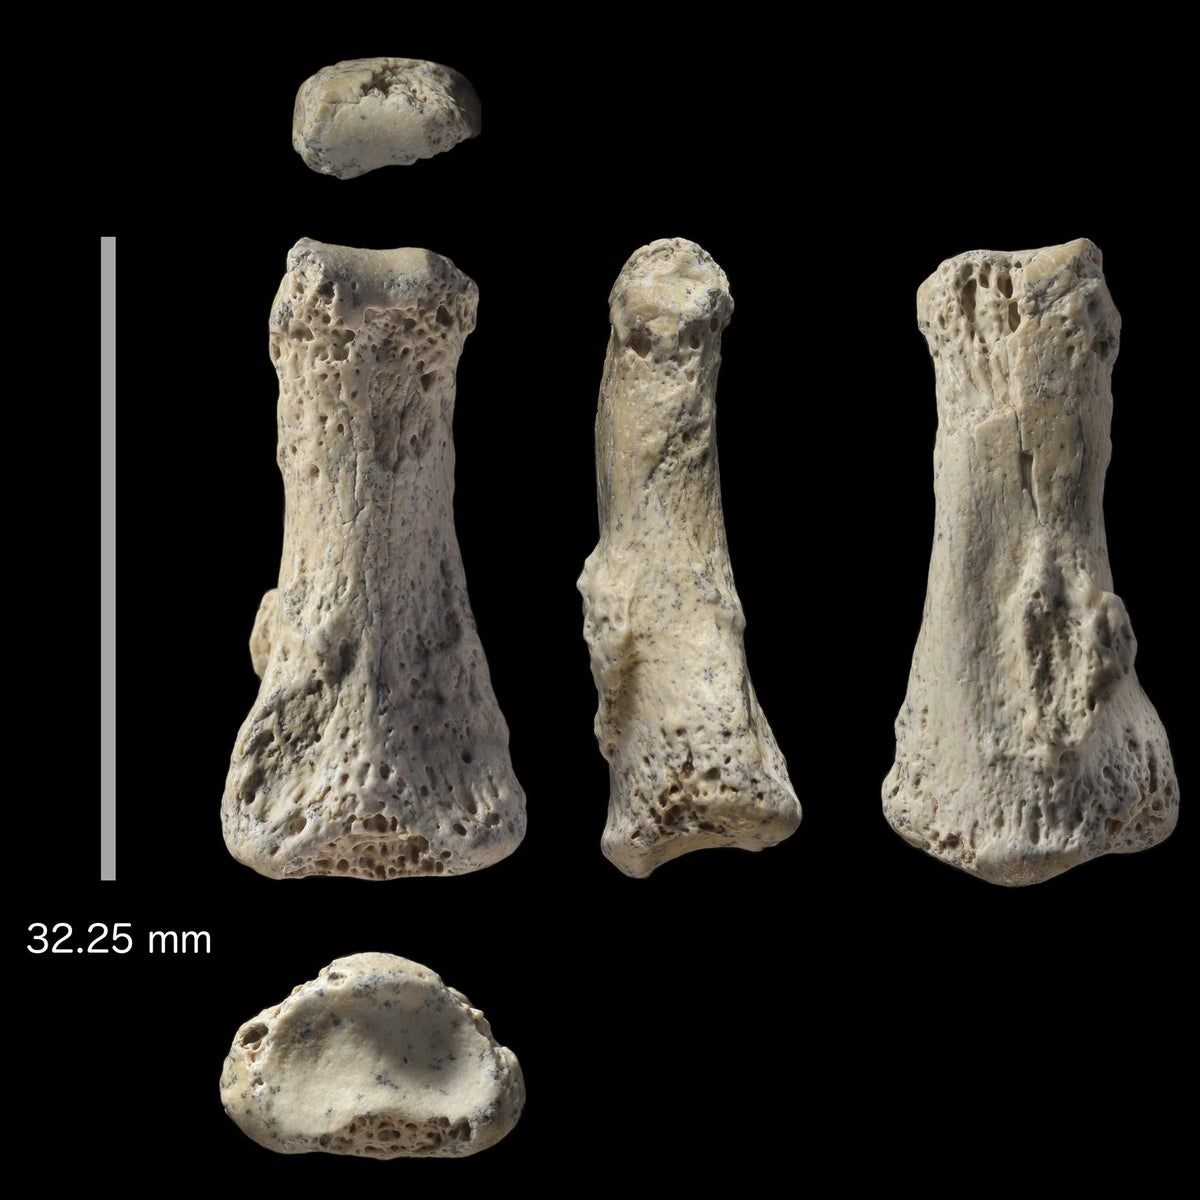 Fossil finger bone of Homo sapiens from the Al Wusta site, Saudi Arabia: the intermediate phalanx groups most closely with modern humans, not Neanderthals or primates